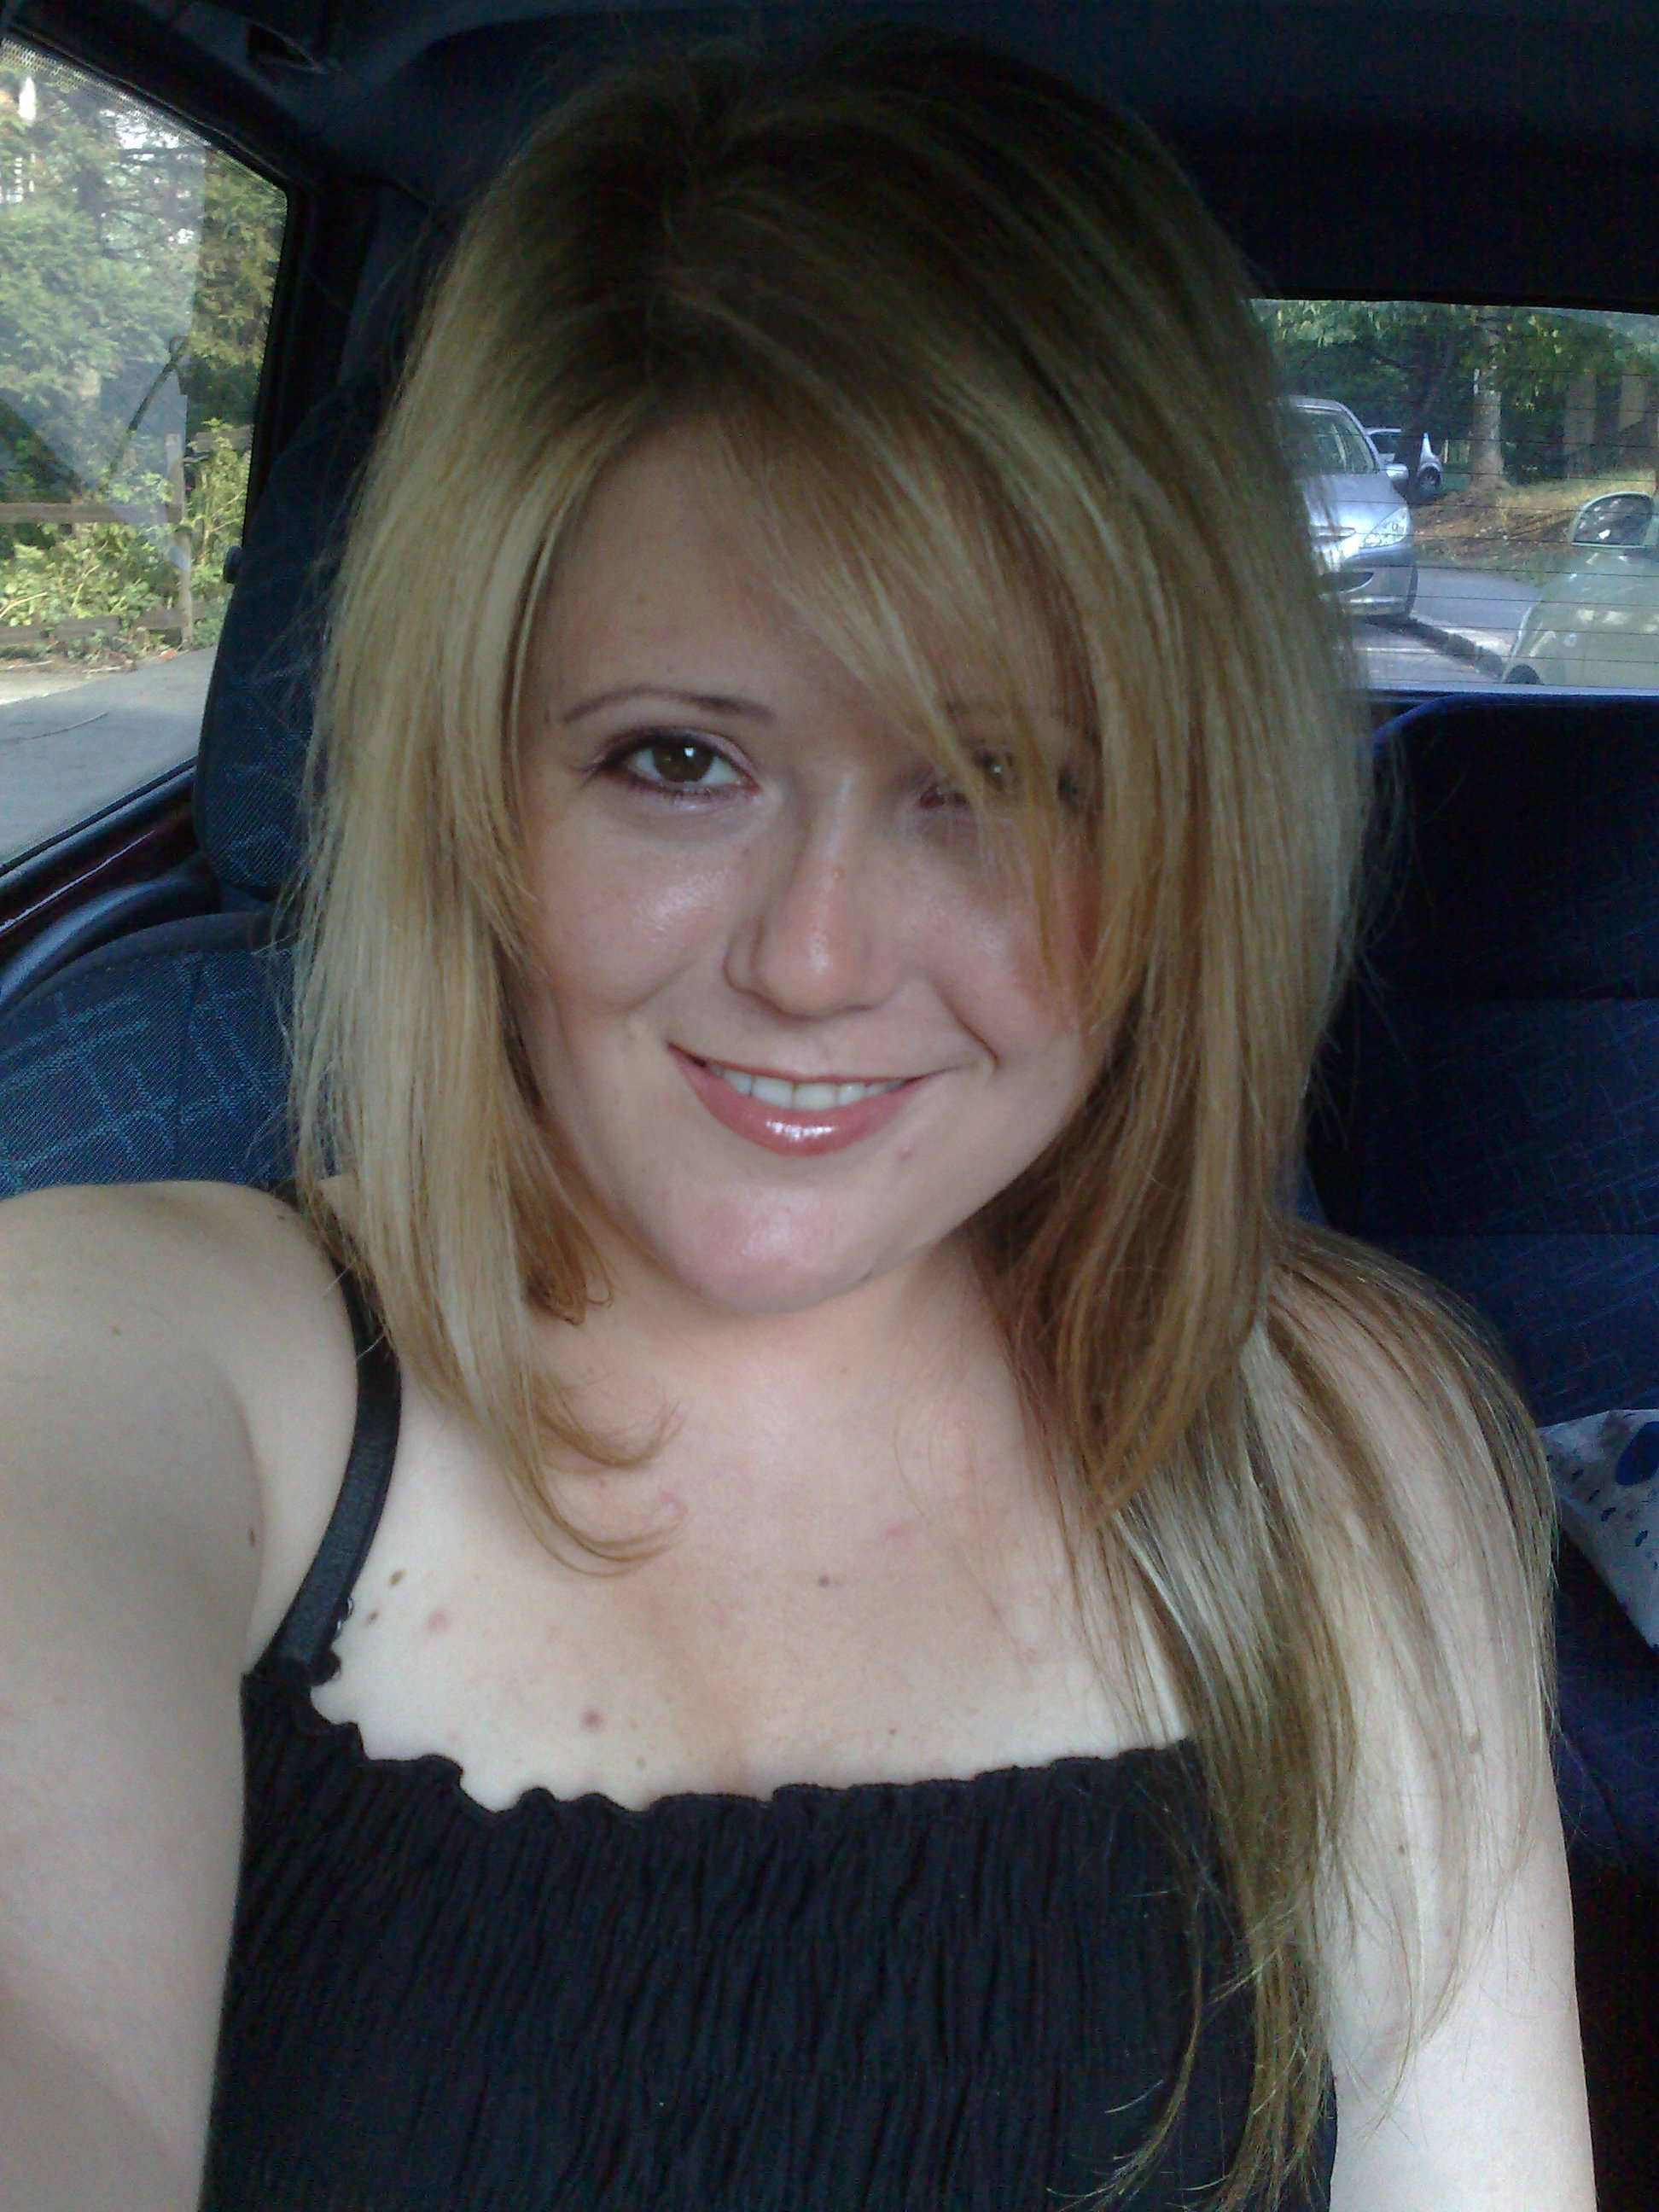 campbell singles dating site 2010-8-9  meet thousands of local campbell river singles, as the worlds largest dating site we make dating in campbell river easy plentyoffish is 100% free, unlike paid dating sites you will get more interest and responses here than all paid dating sites combined over 1,500,000 daters login every day to.